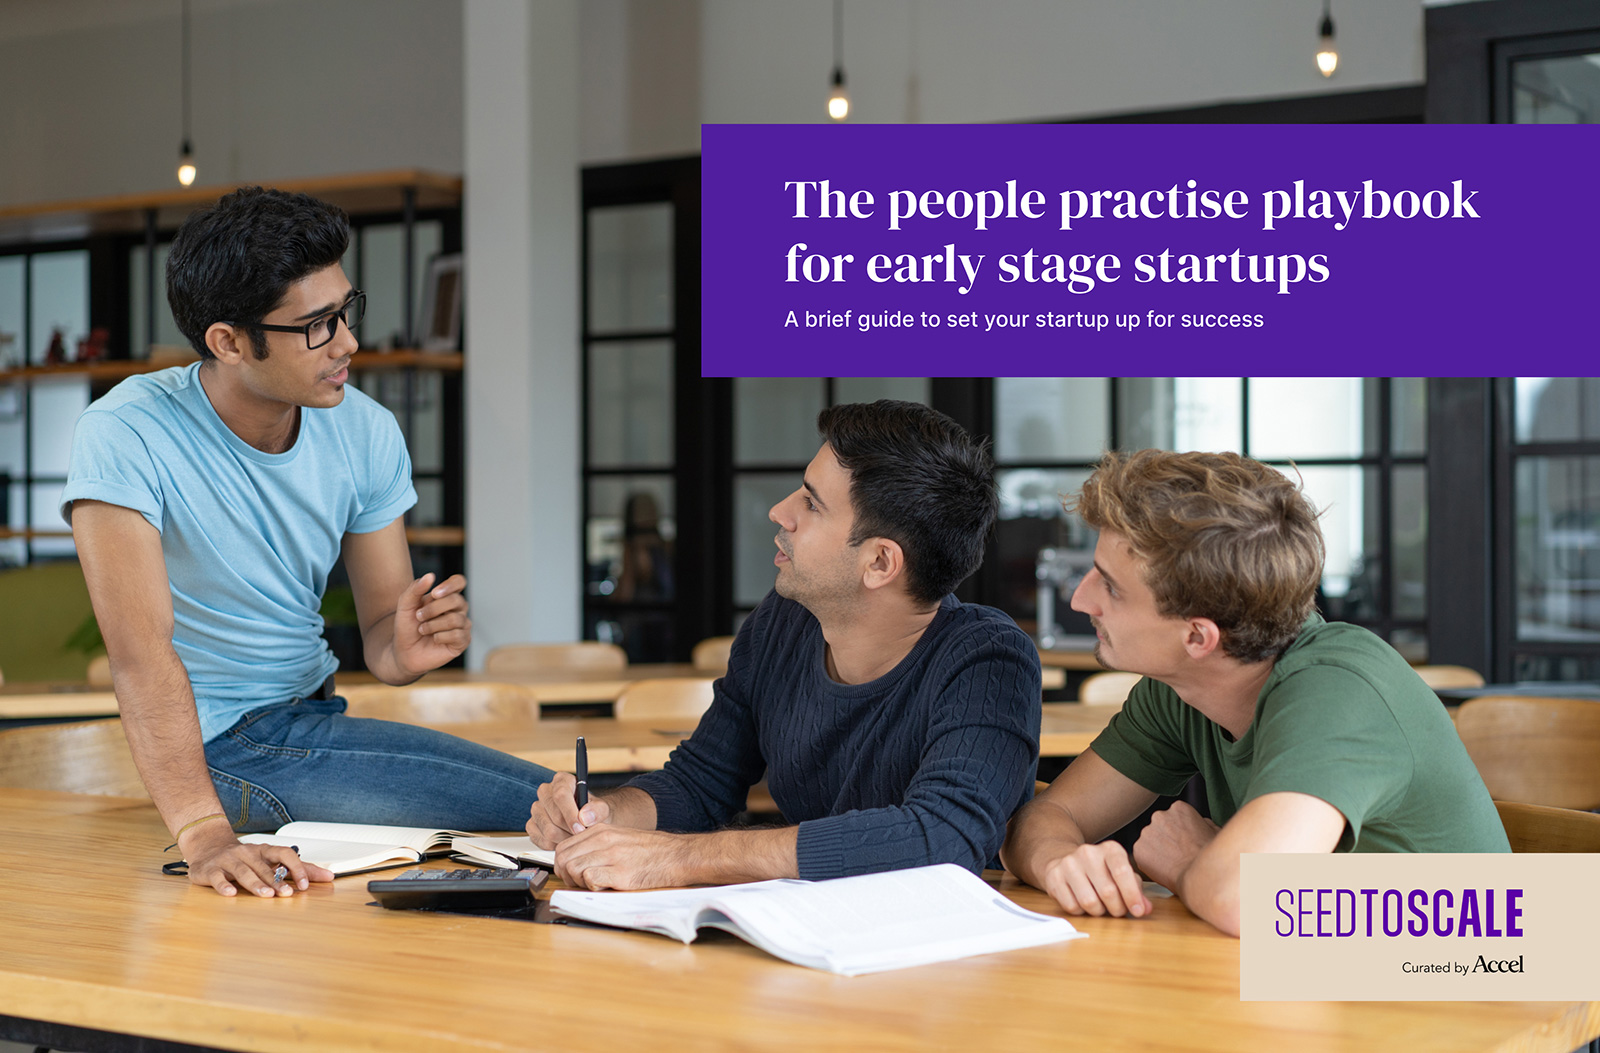 The people practice playbook for early stage startups